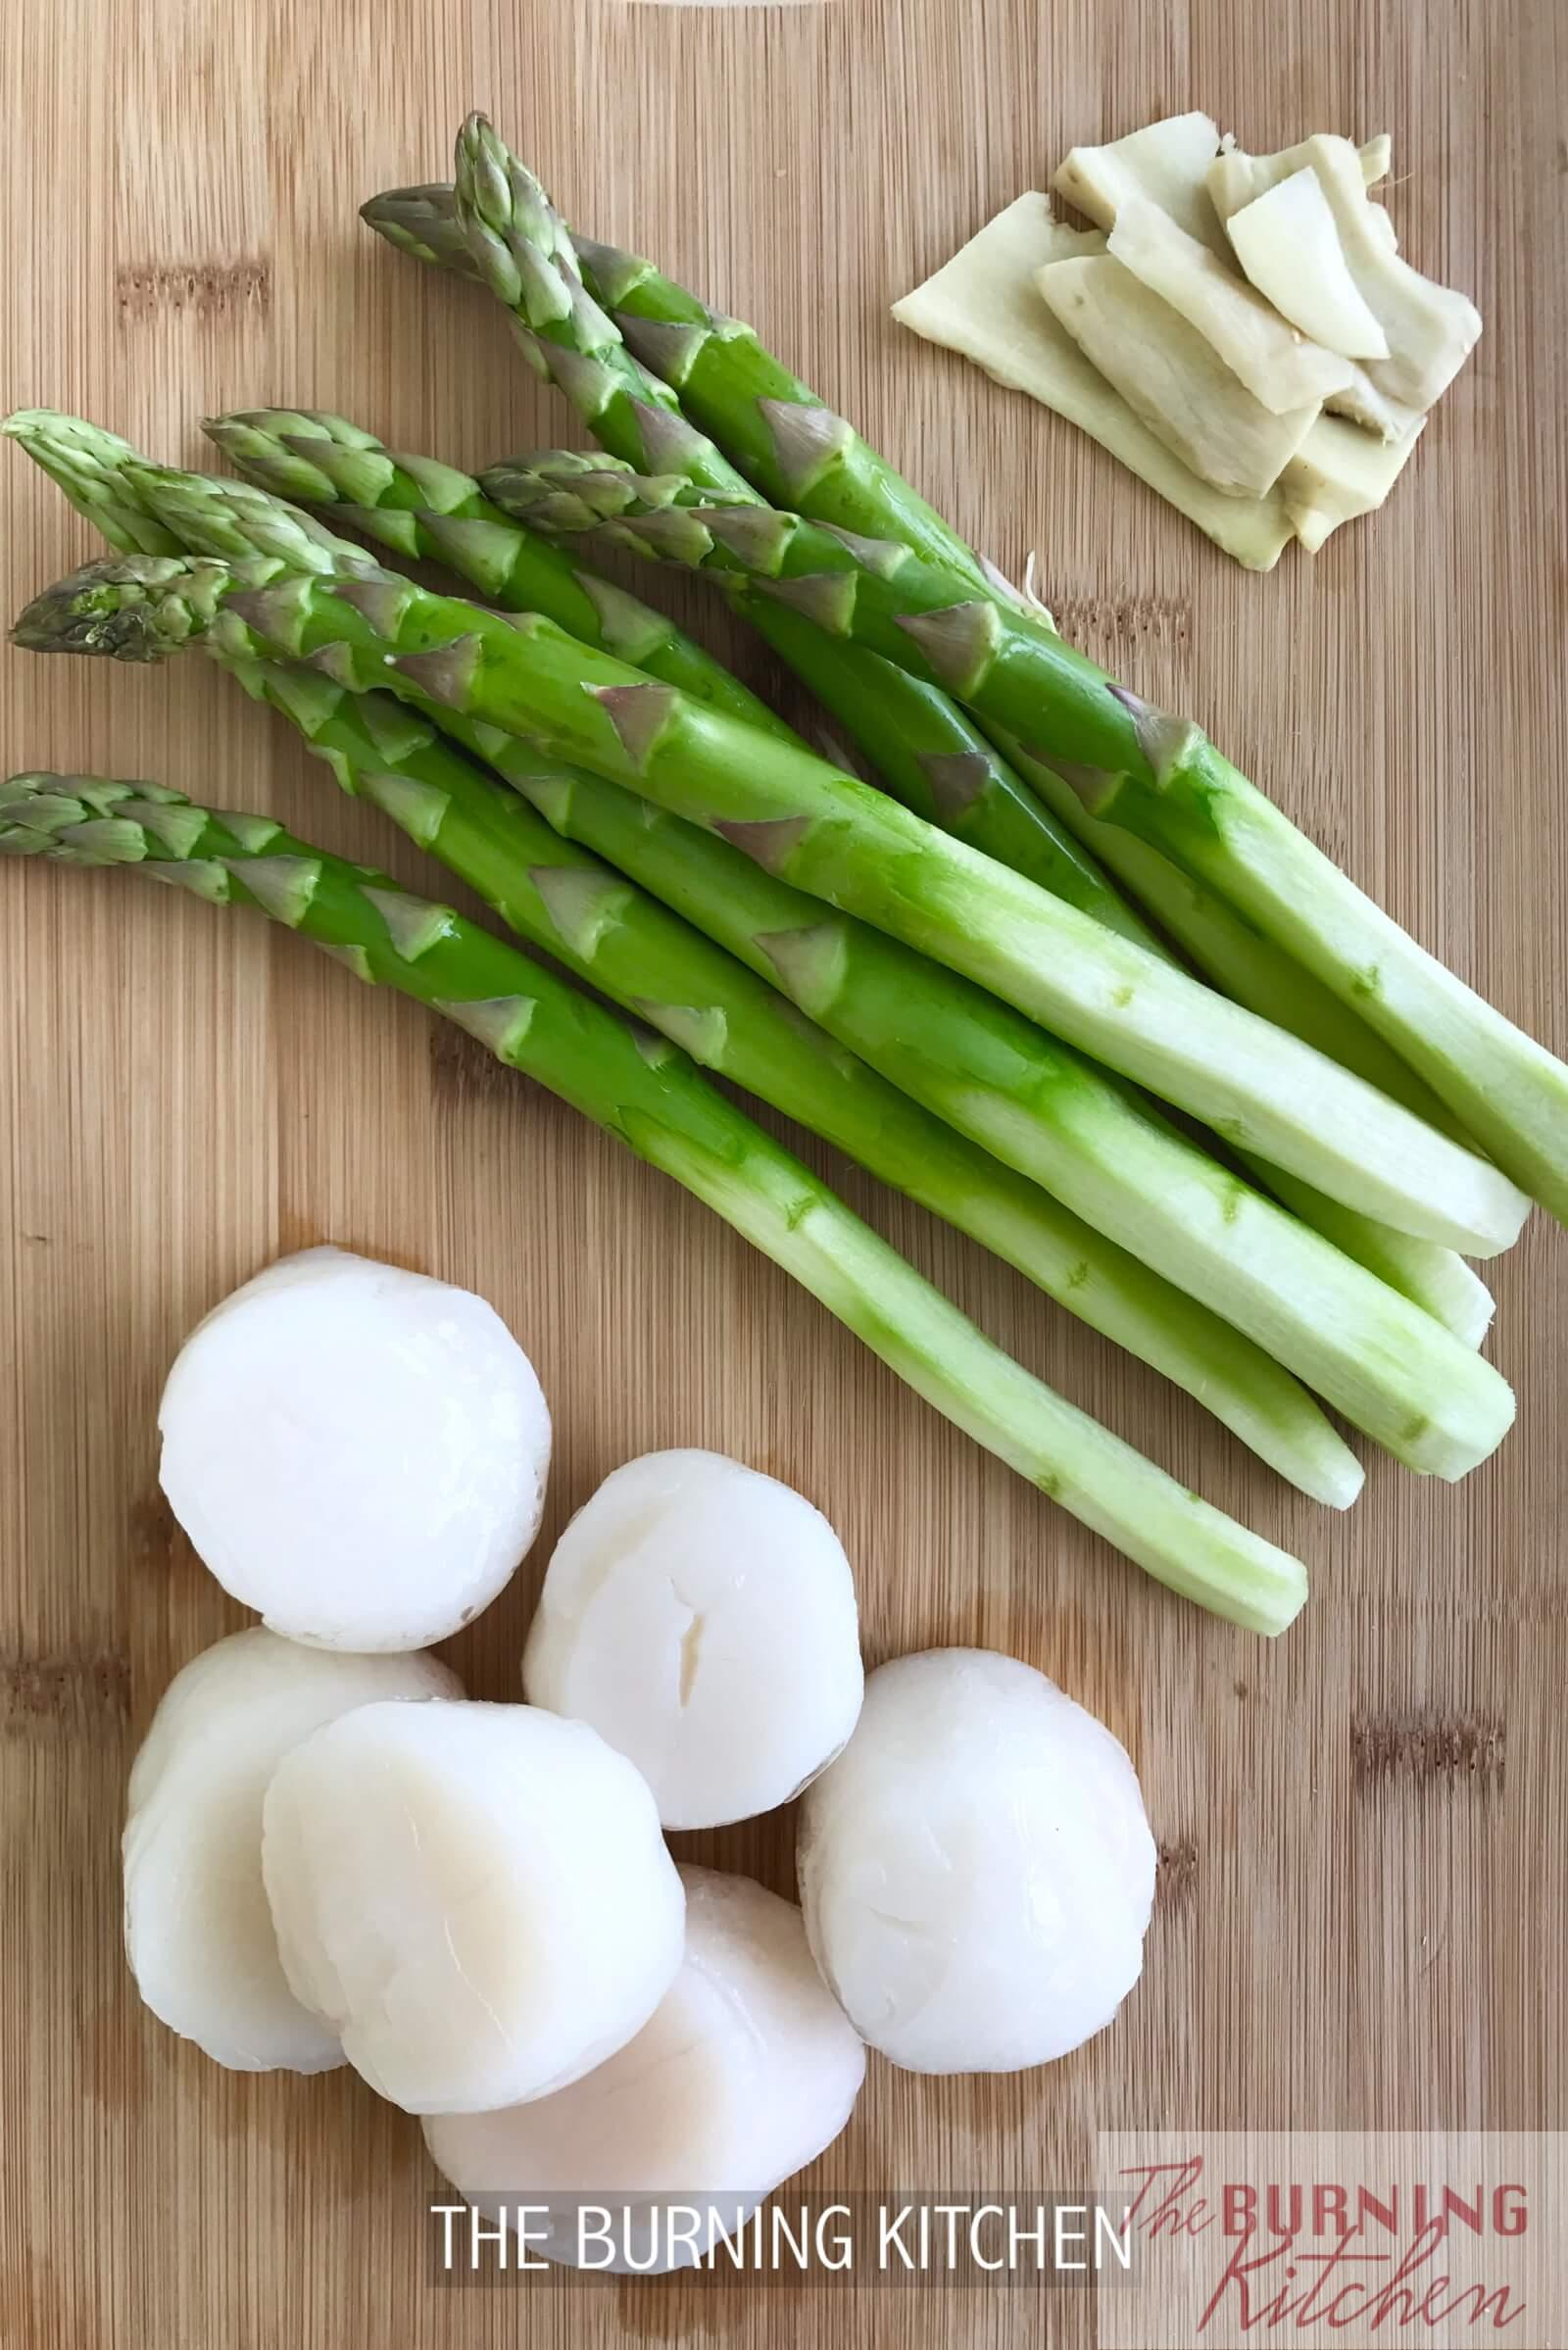 Seared Japanese Scallops with Asparagus: These savoury and oh so tender Japanese scallops goes perfect with the crunchy natural sweetness of asparagus, which help to balance out the dish. It may be costly though, so reserve this dish for a special occasion!